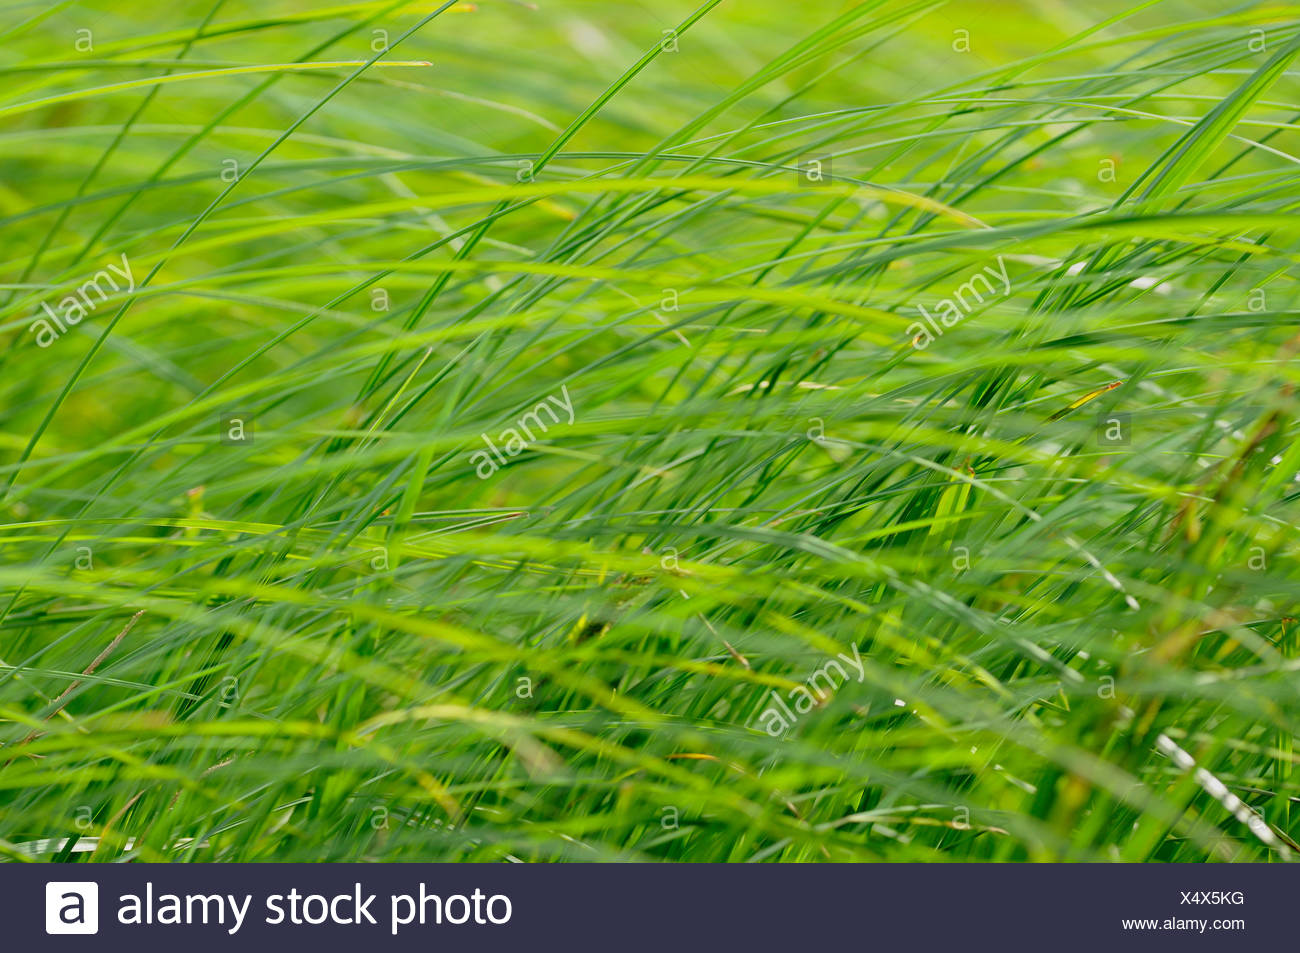 sedges in wind, Germany - Stock Image